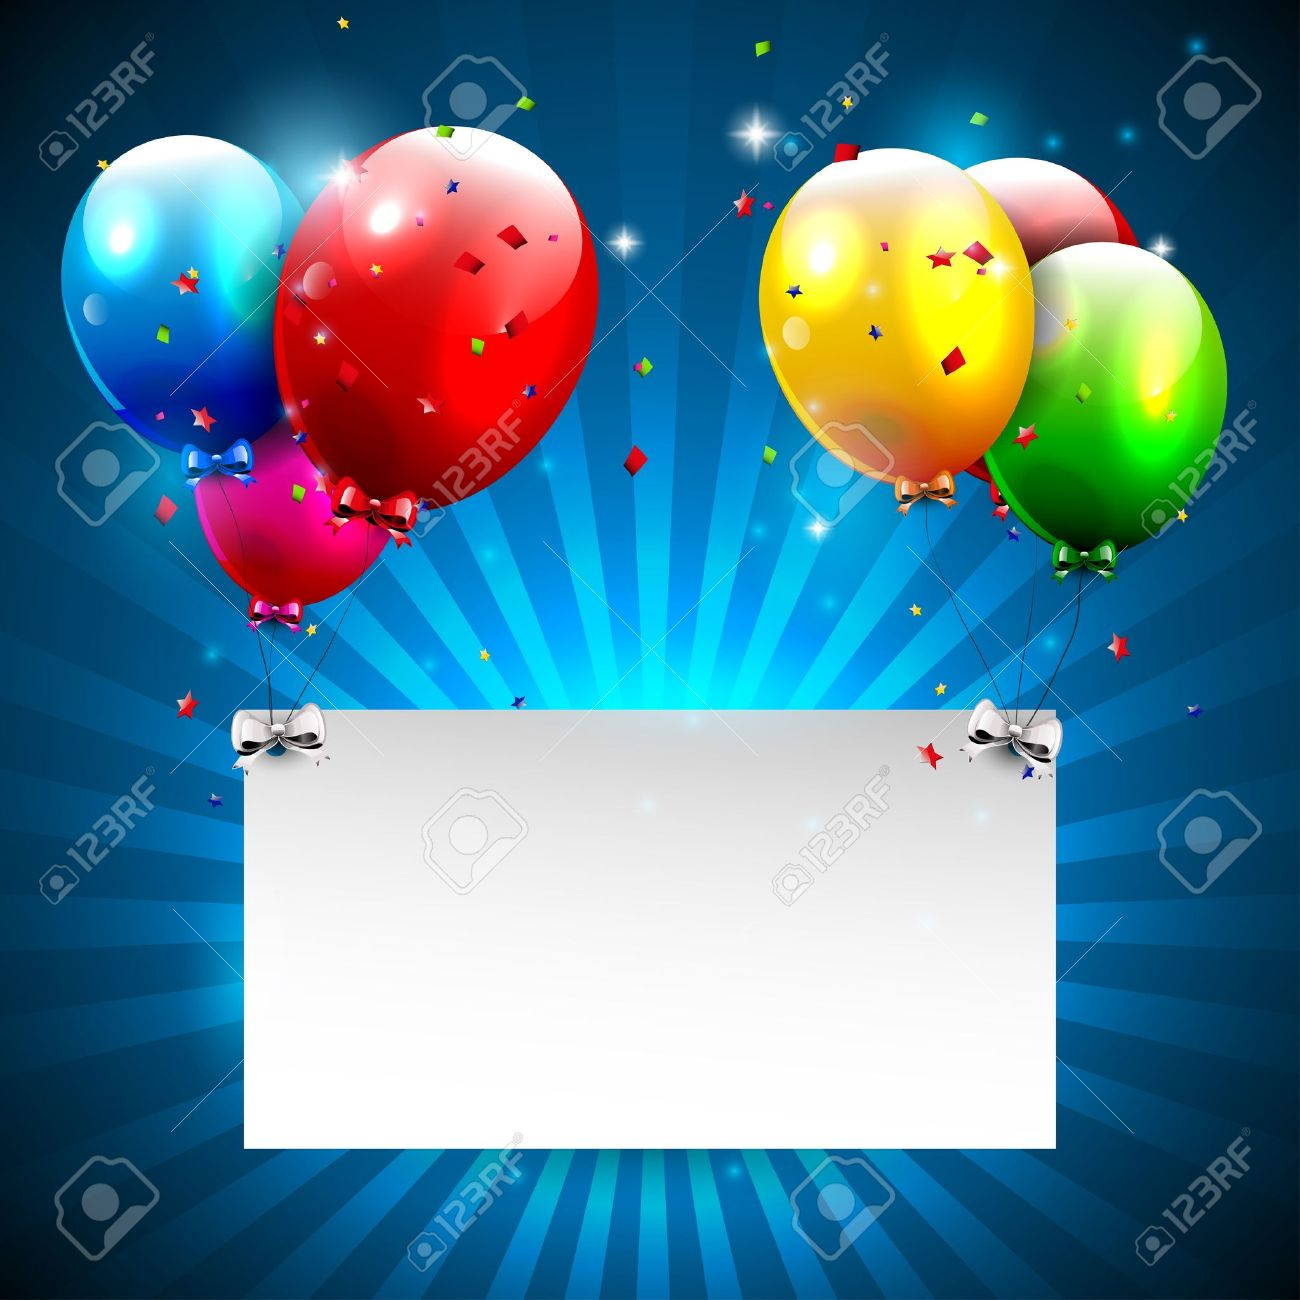 Modern blue birthday background with place for text Stock Vector - 16877273